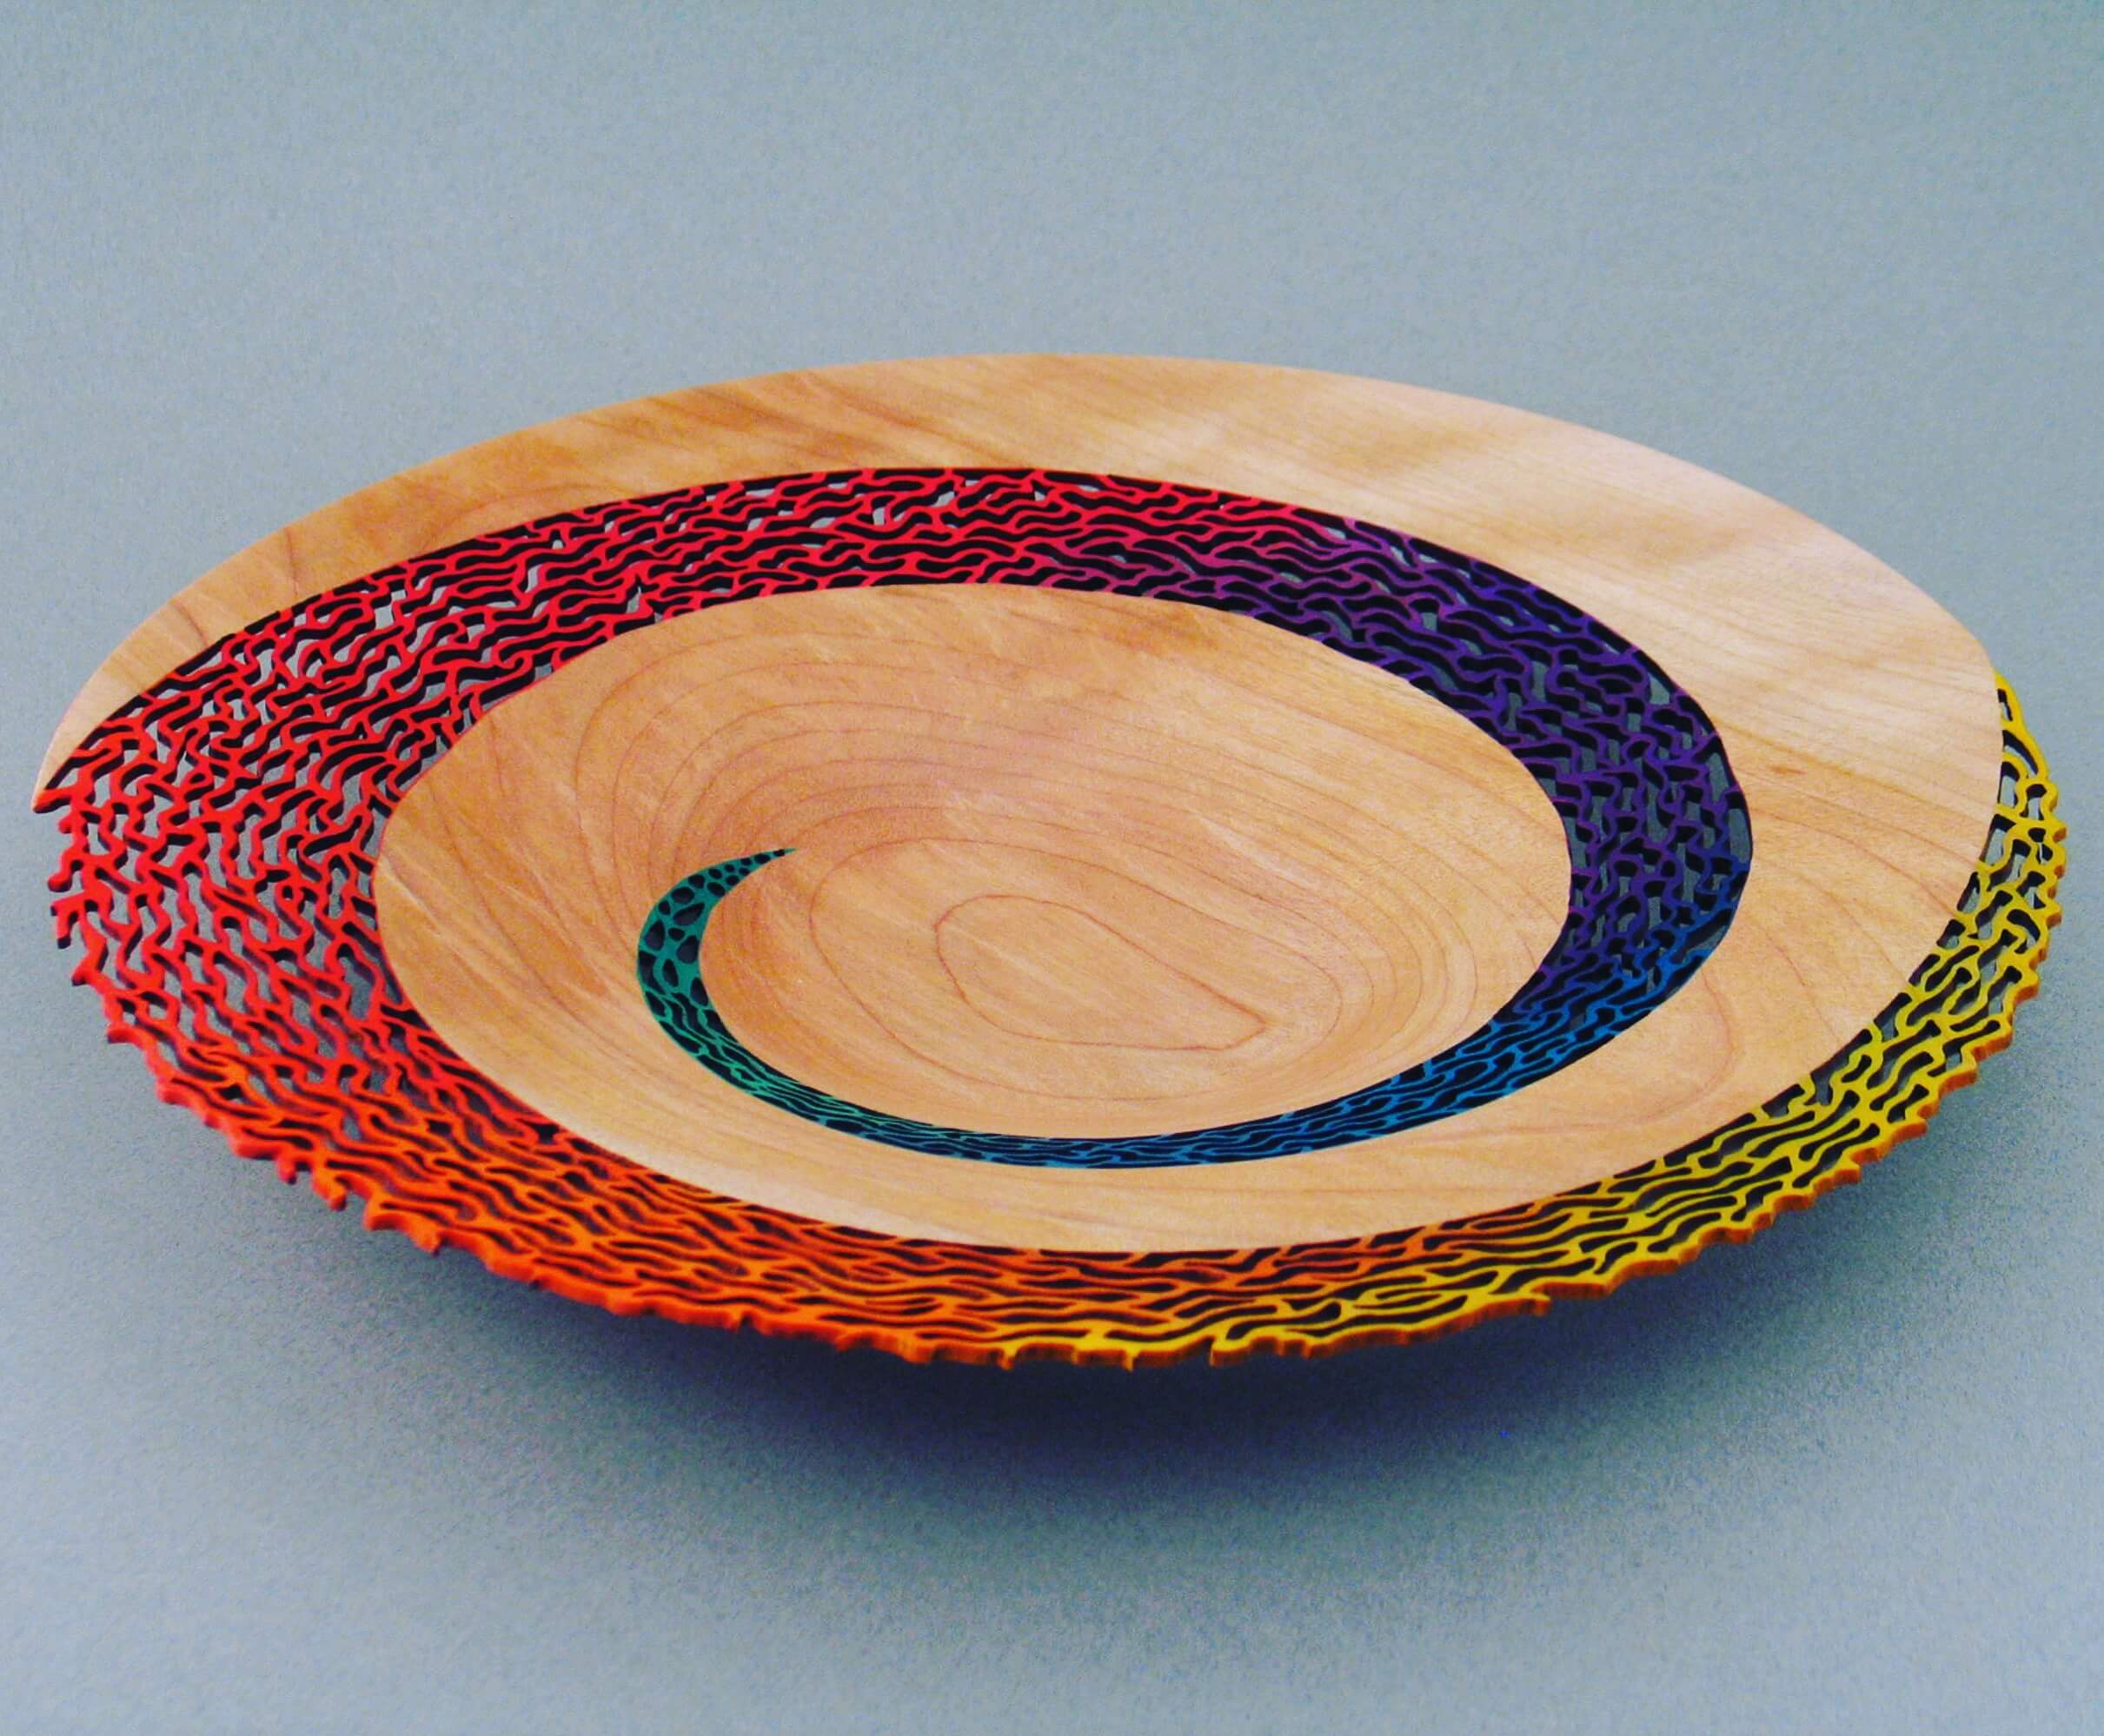 Paul Petrie Jr., Woodwork at the Woodstock-New Paltz Art & Crafts Fair